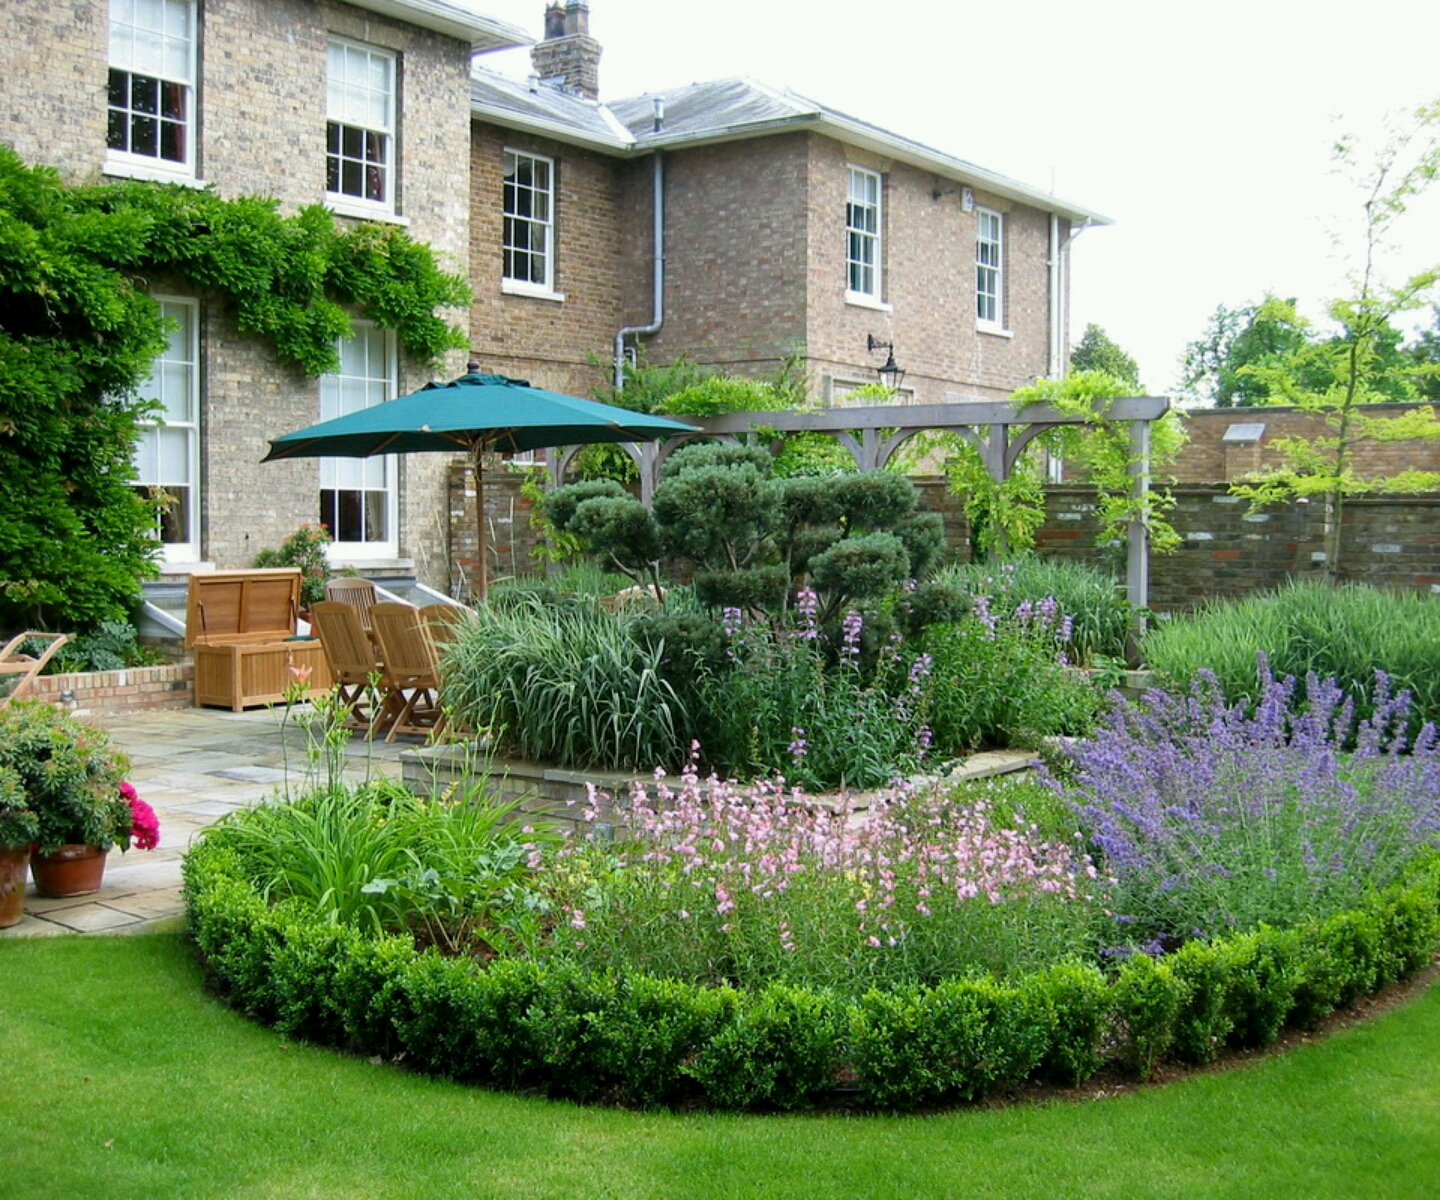 home garden design ideas photo - 7